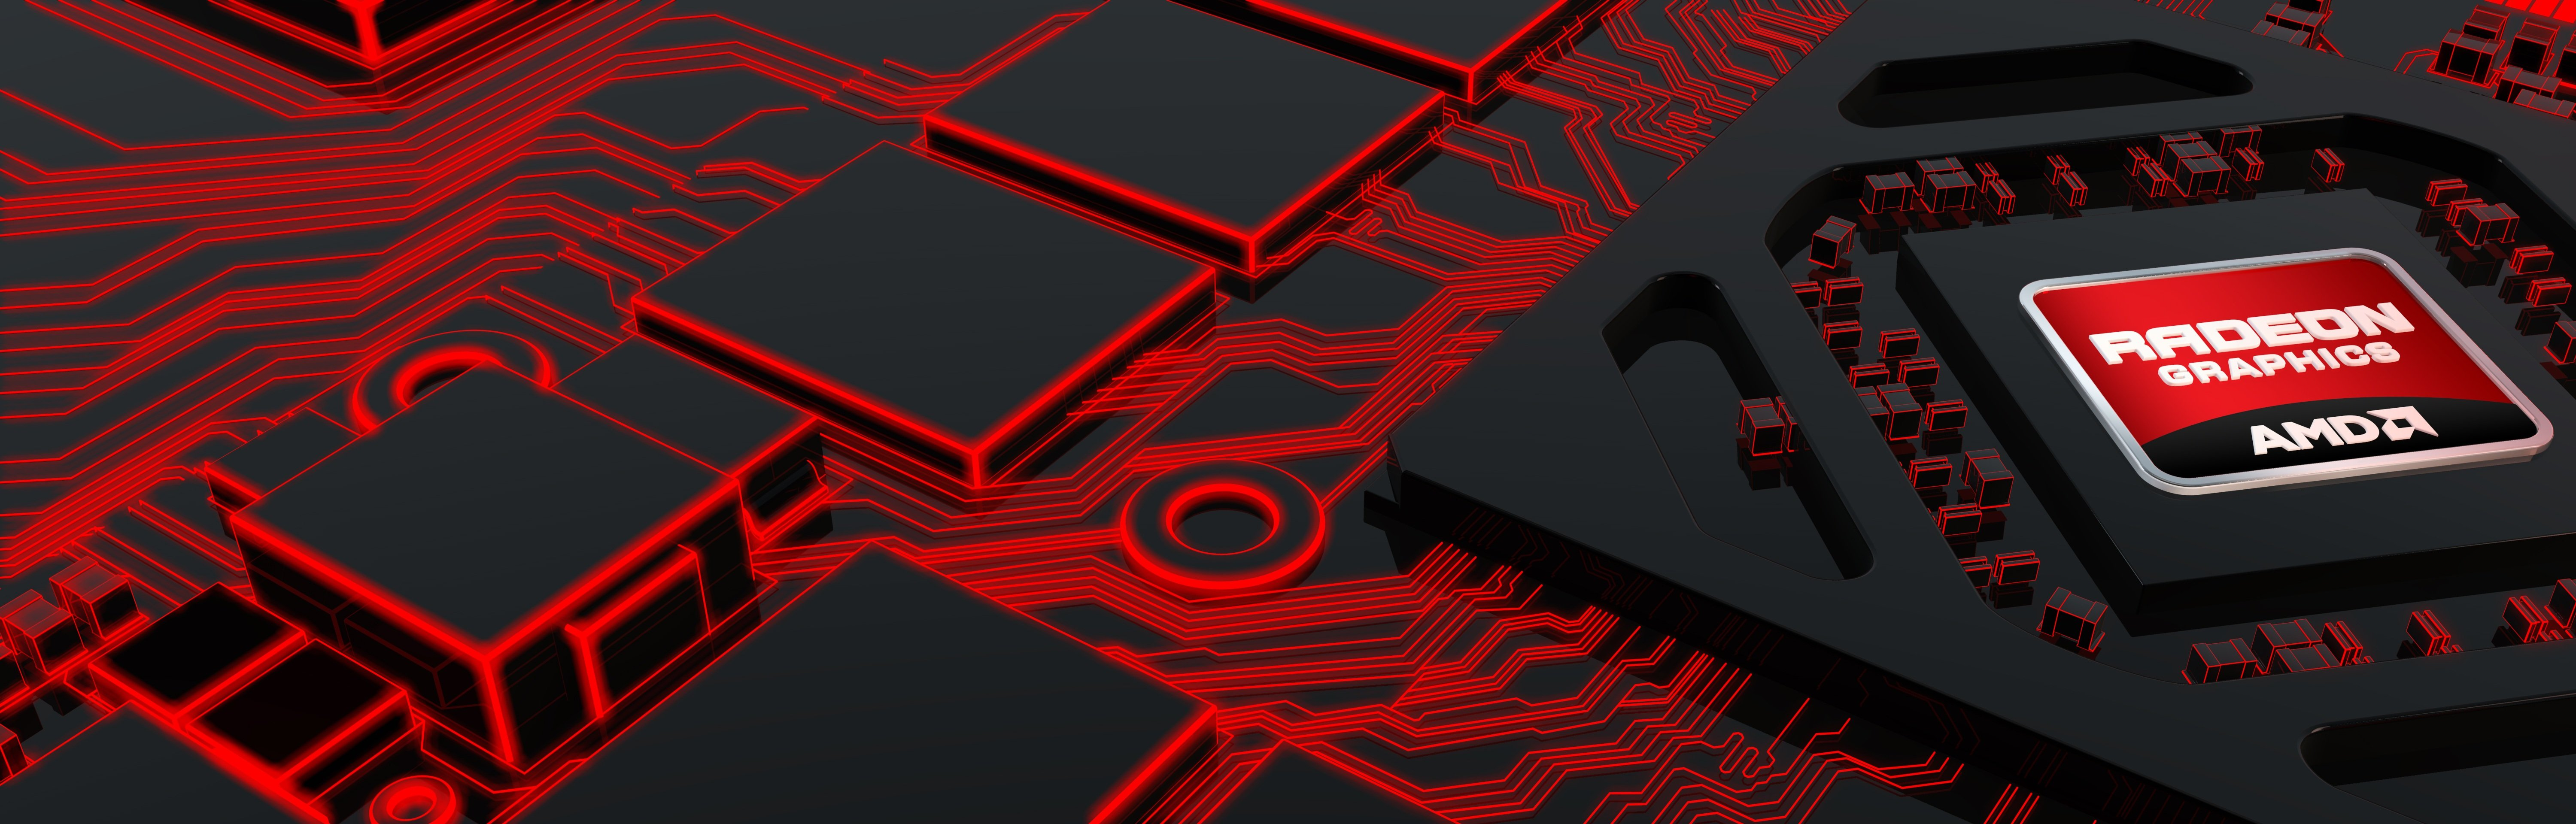 AMD Radeon Wallpapers on WallpaperSafari